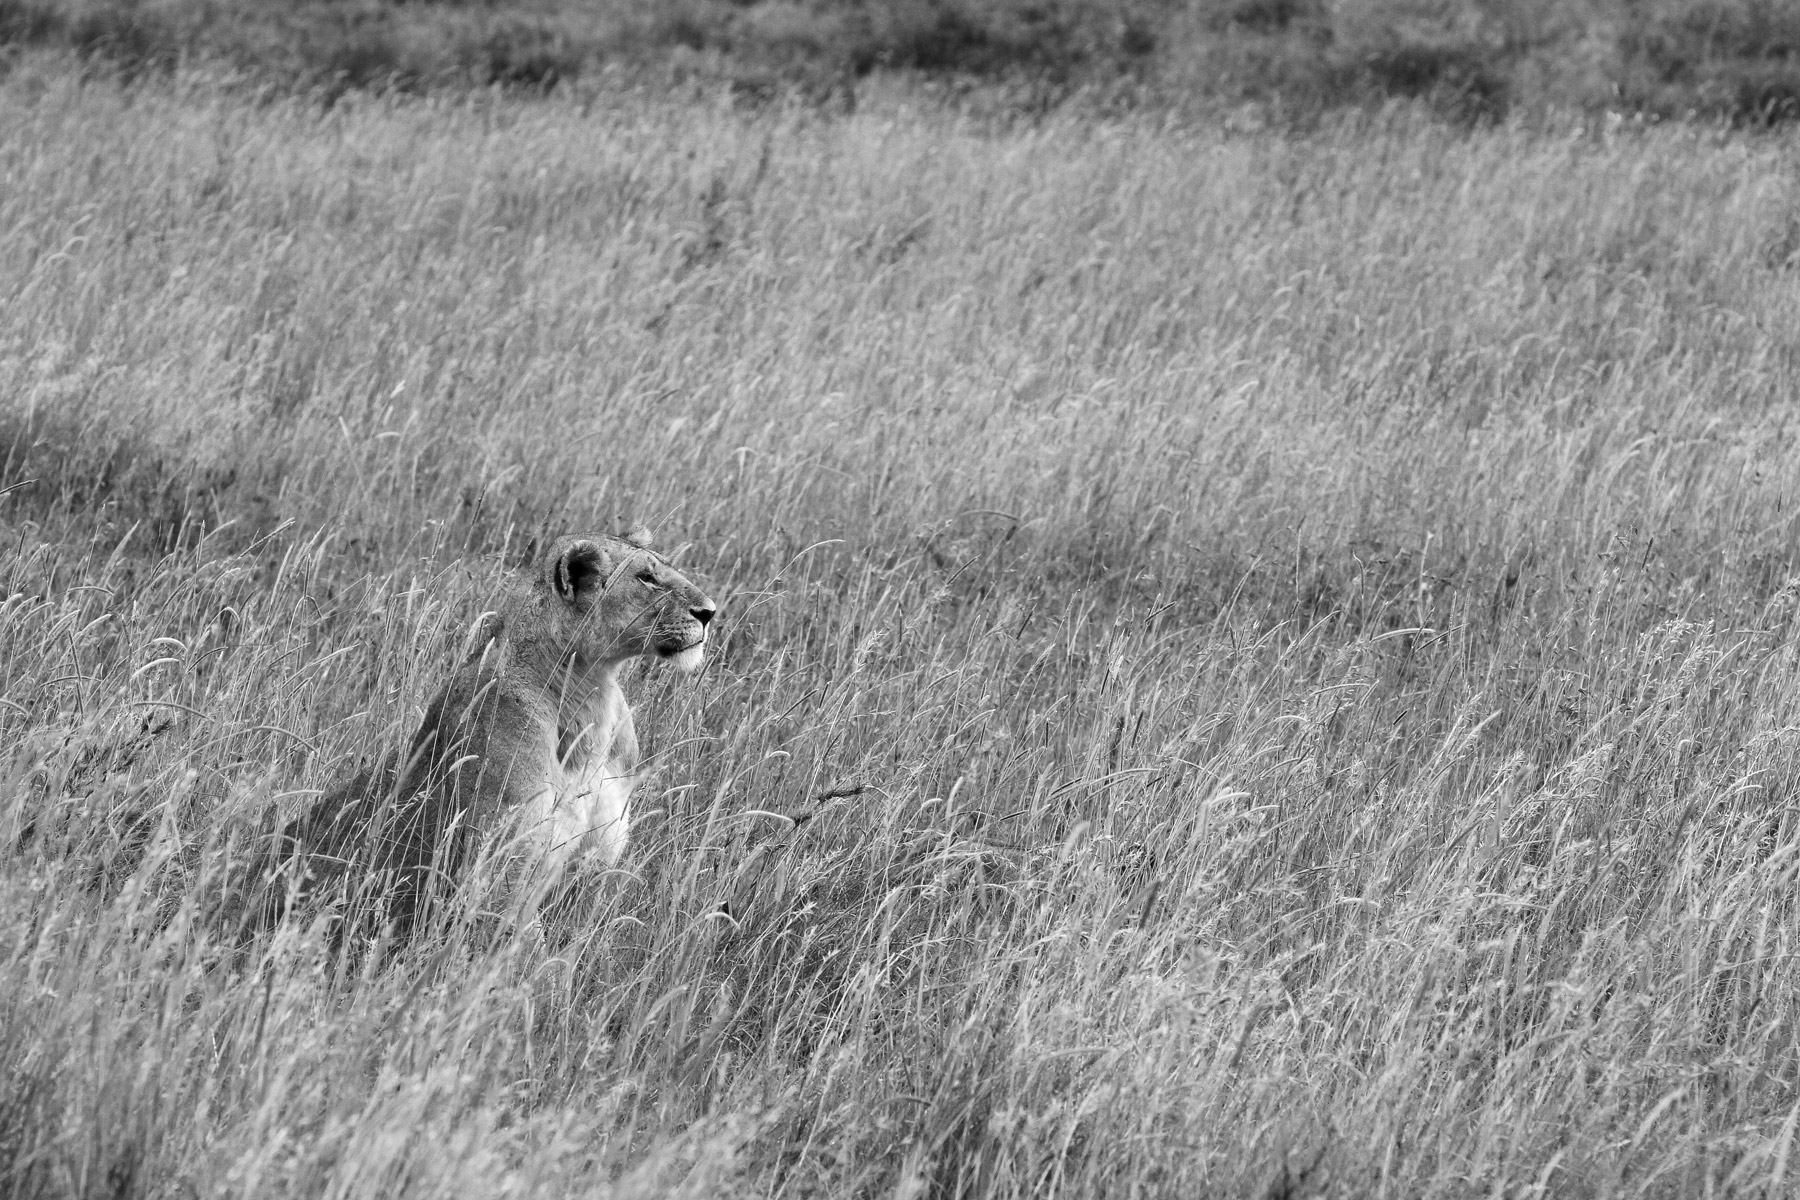 A lioness sitting in tall grass in Serengeti National Park, Tanzania